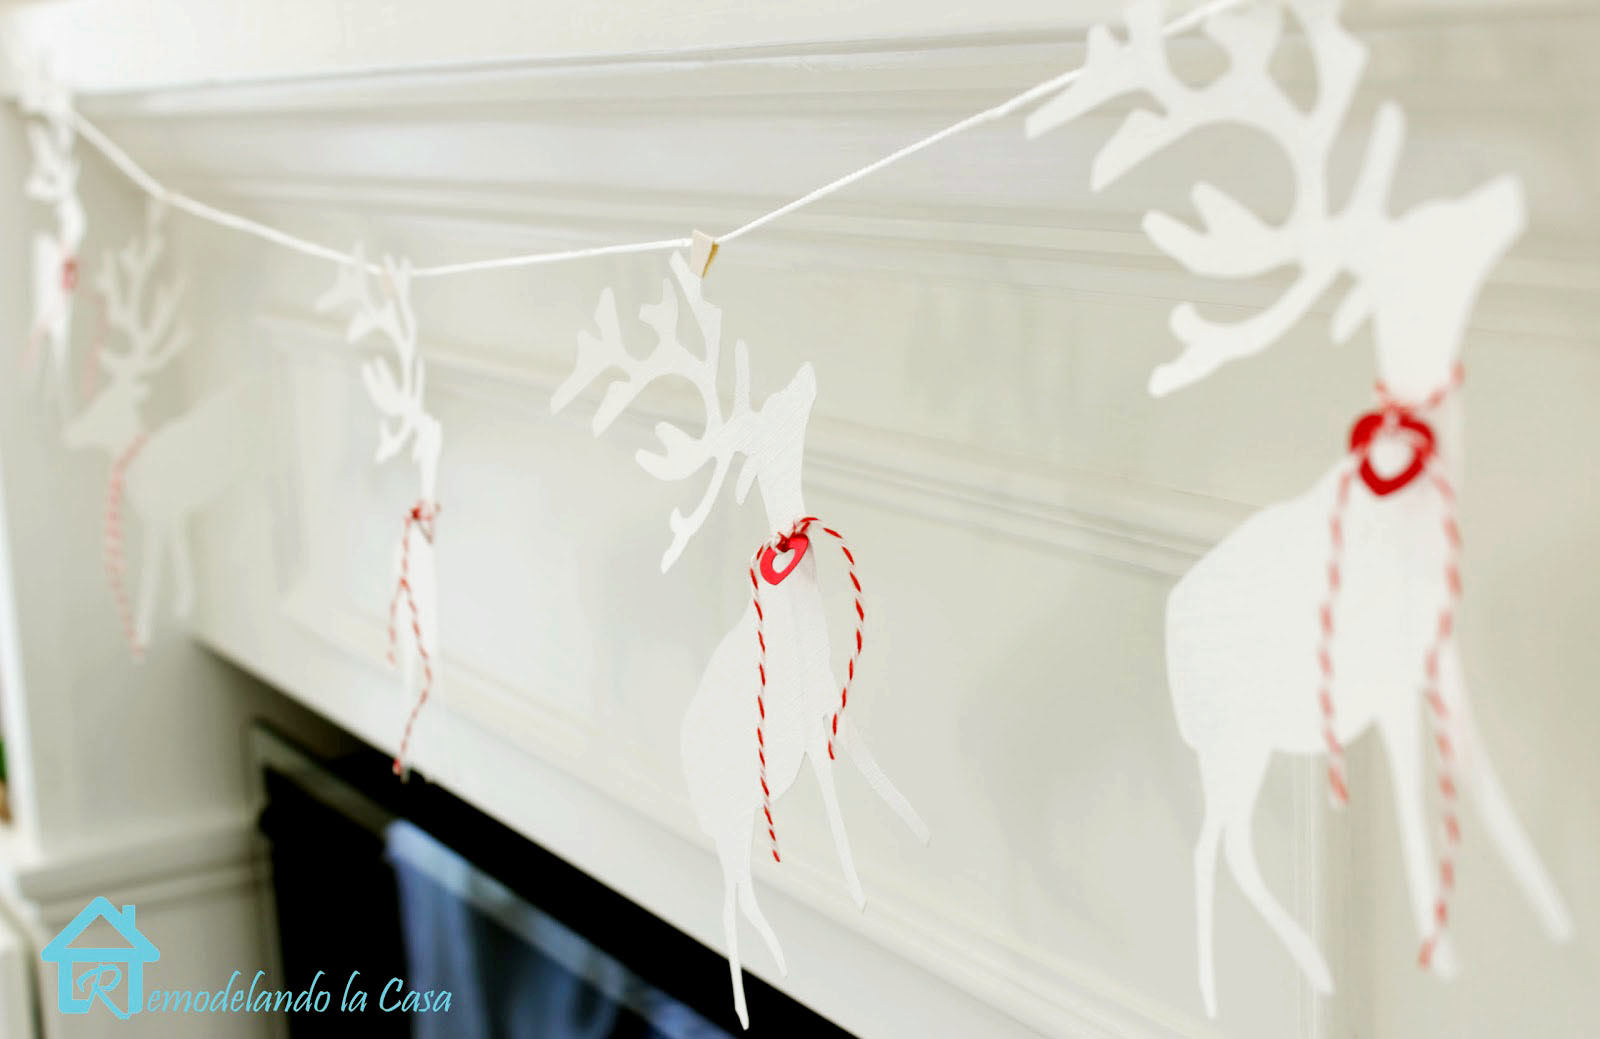 remodelando la casa 15 frugal valentine s day home decor ideas diy reindeer garland to decorate mantel during valentines